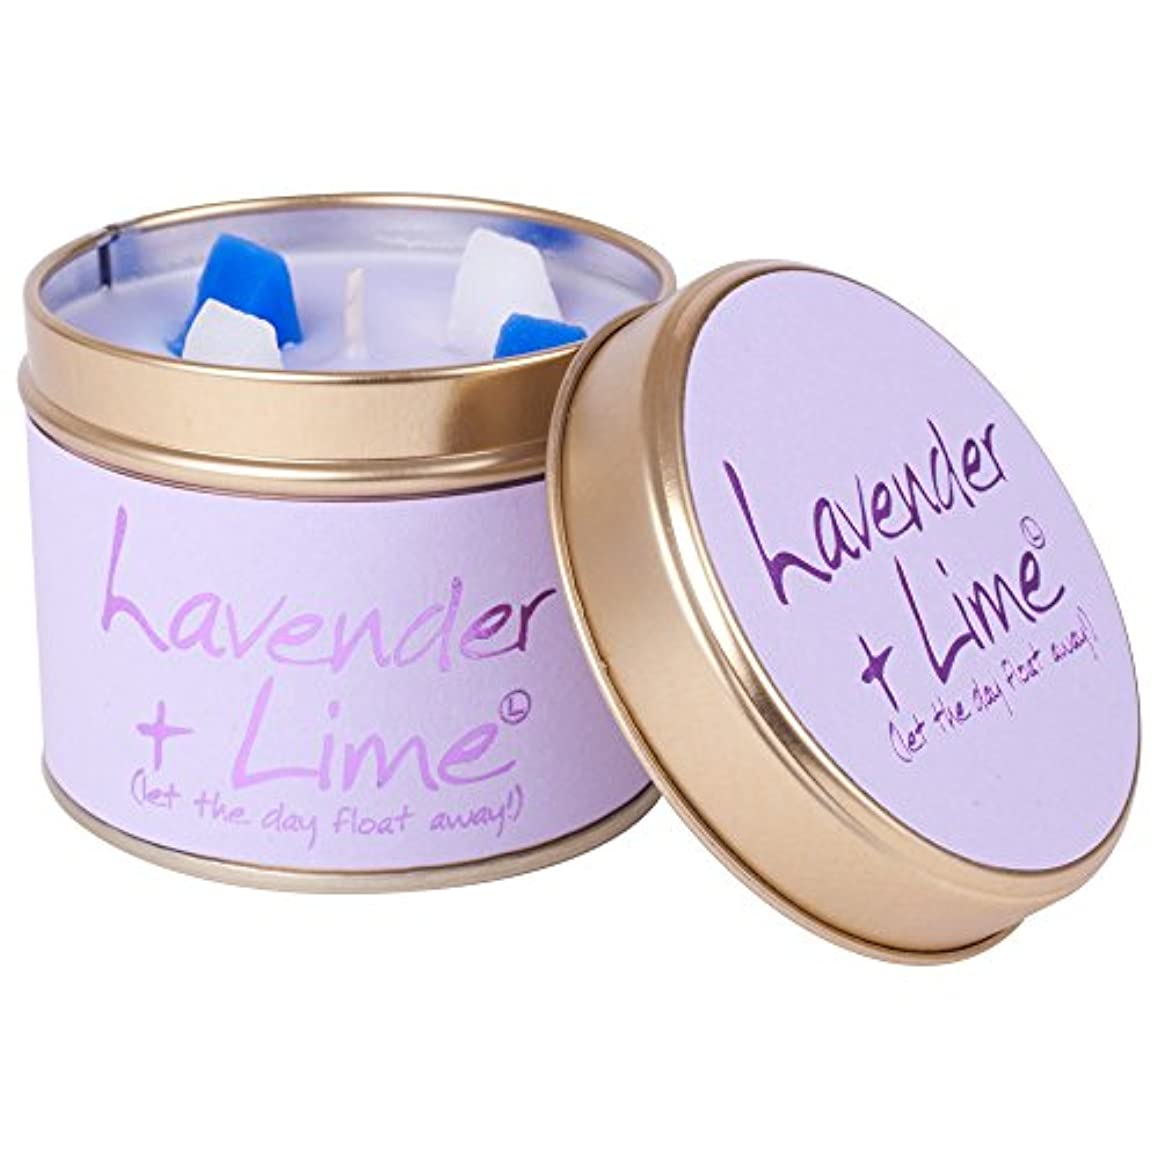 Lily-Flame Lavender and Lime Scented Candle Tin (Pack of 2) - ユリ炎ラベンダー、ライムの香りのキャンドルスズ (Lily-Flame) (x2) [並行輸入品]